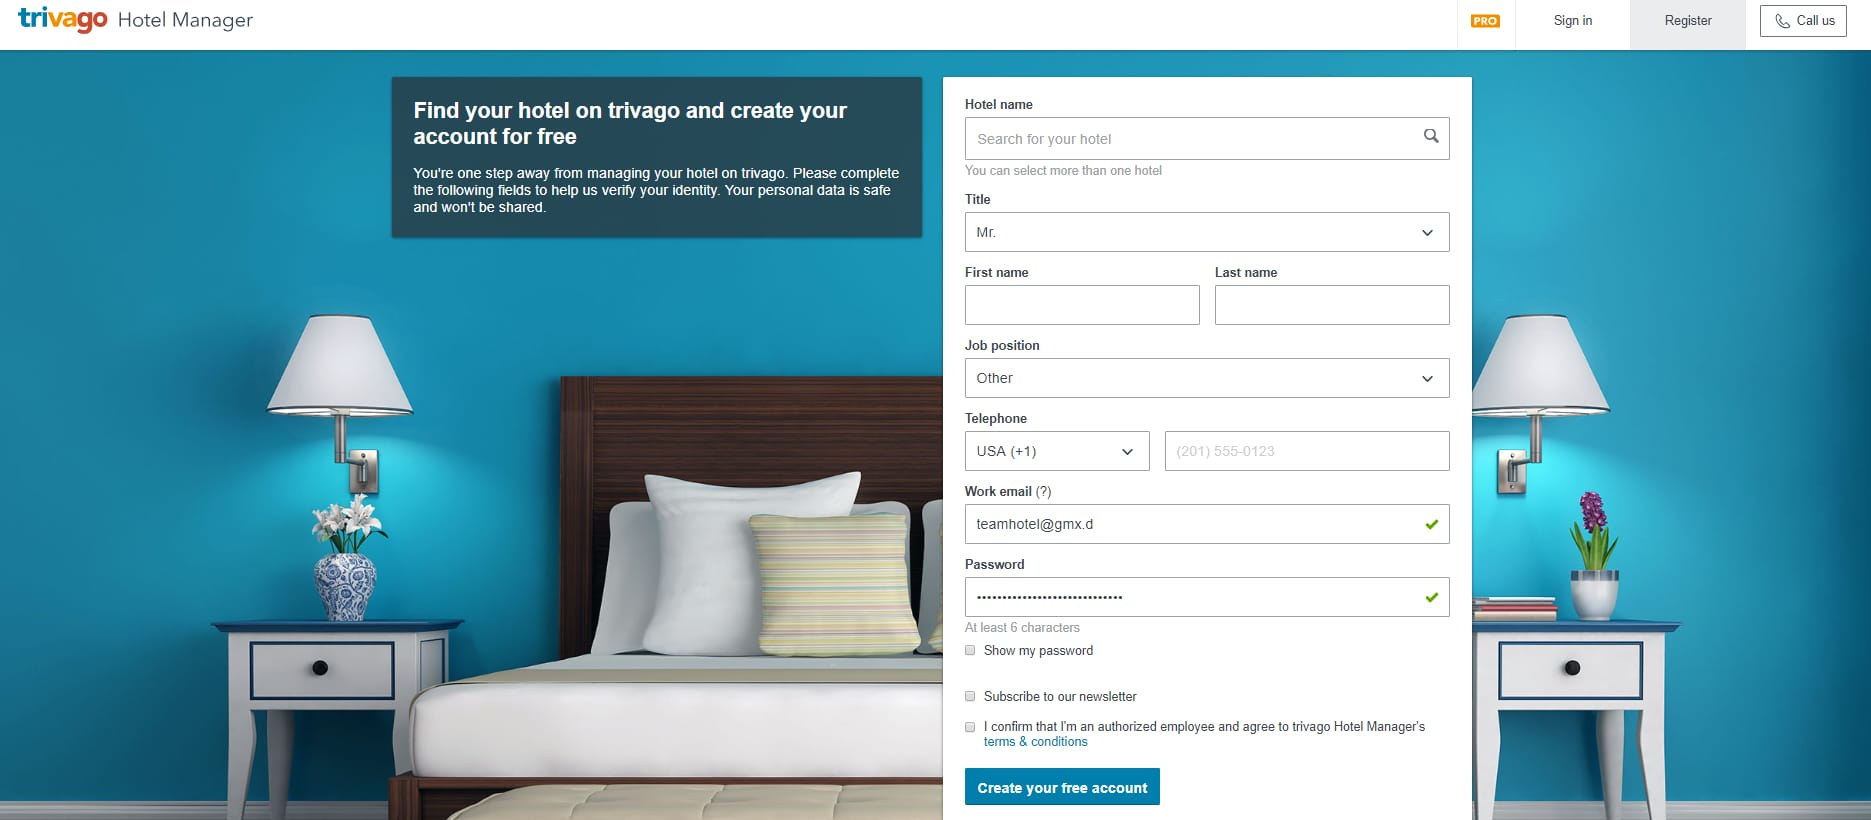 How to add your hotel to trivago